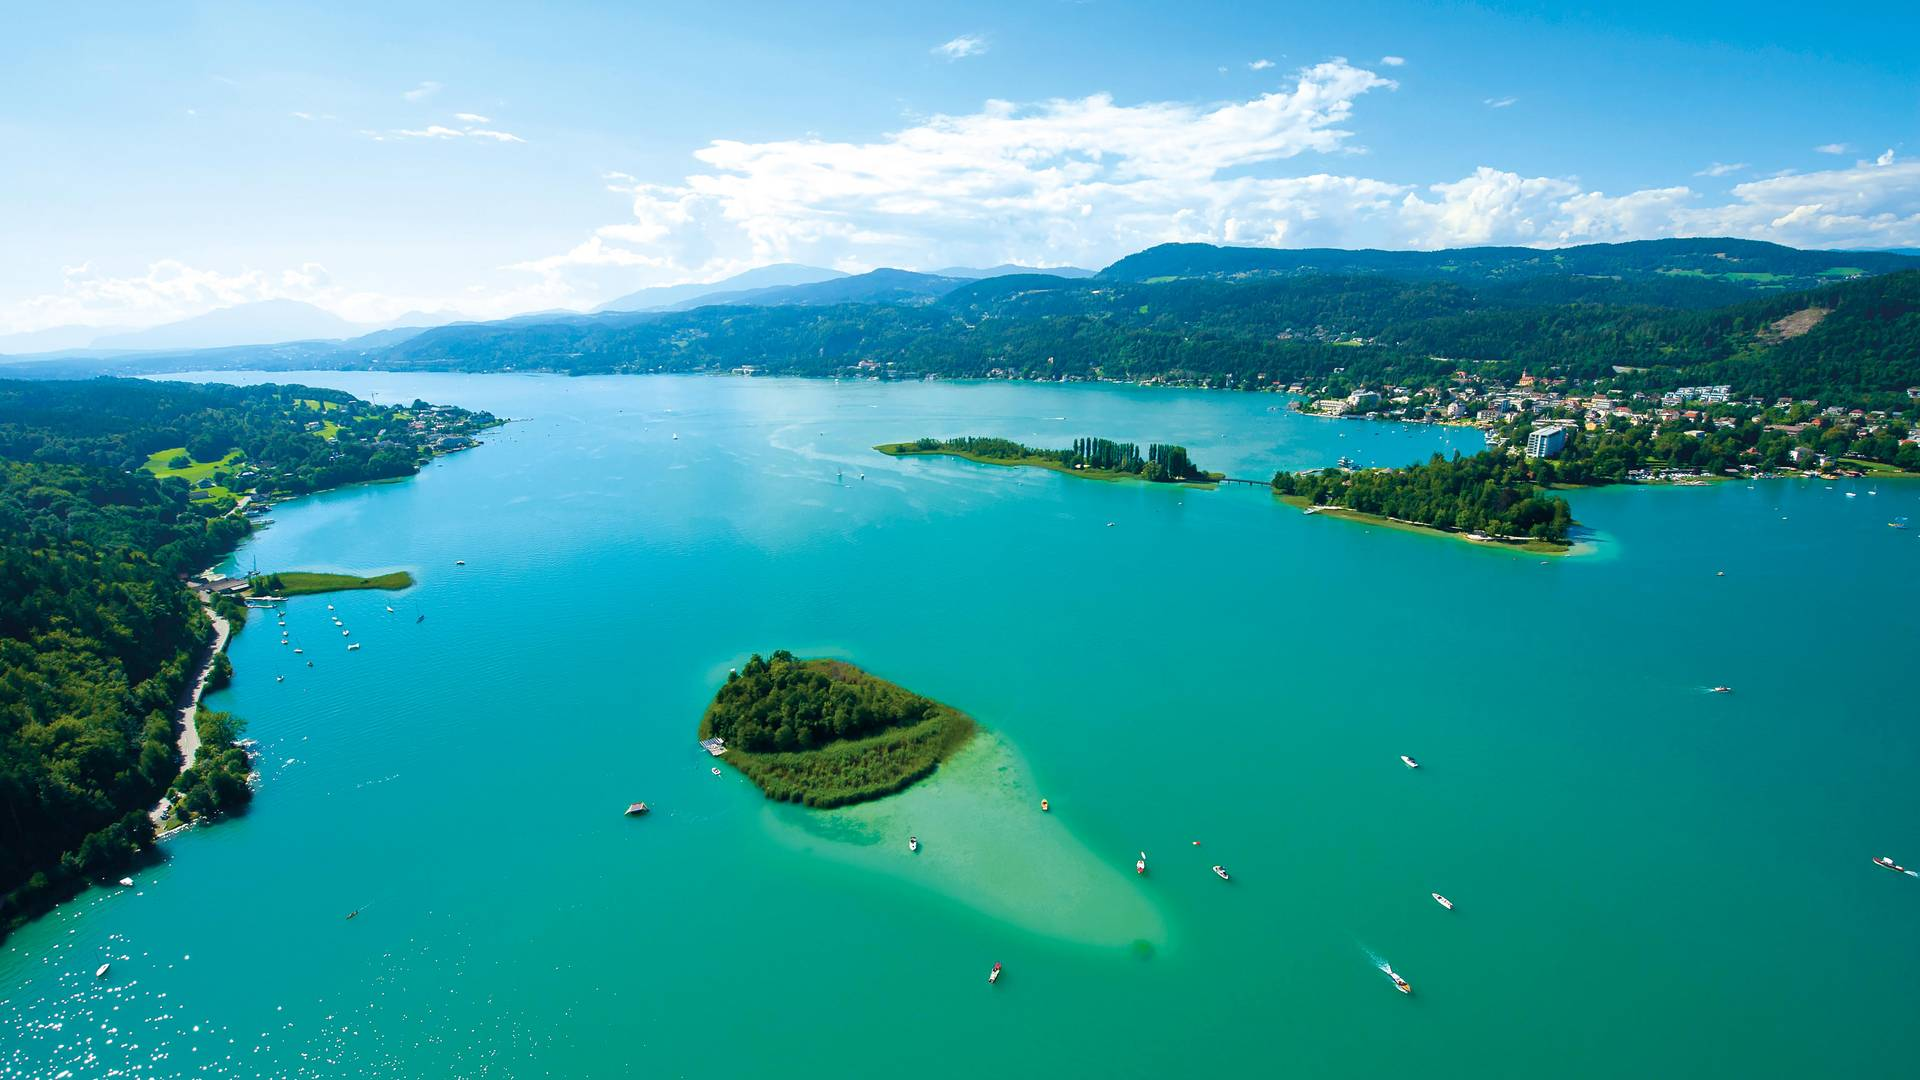 Kapuzinerinsel am Woerthersee